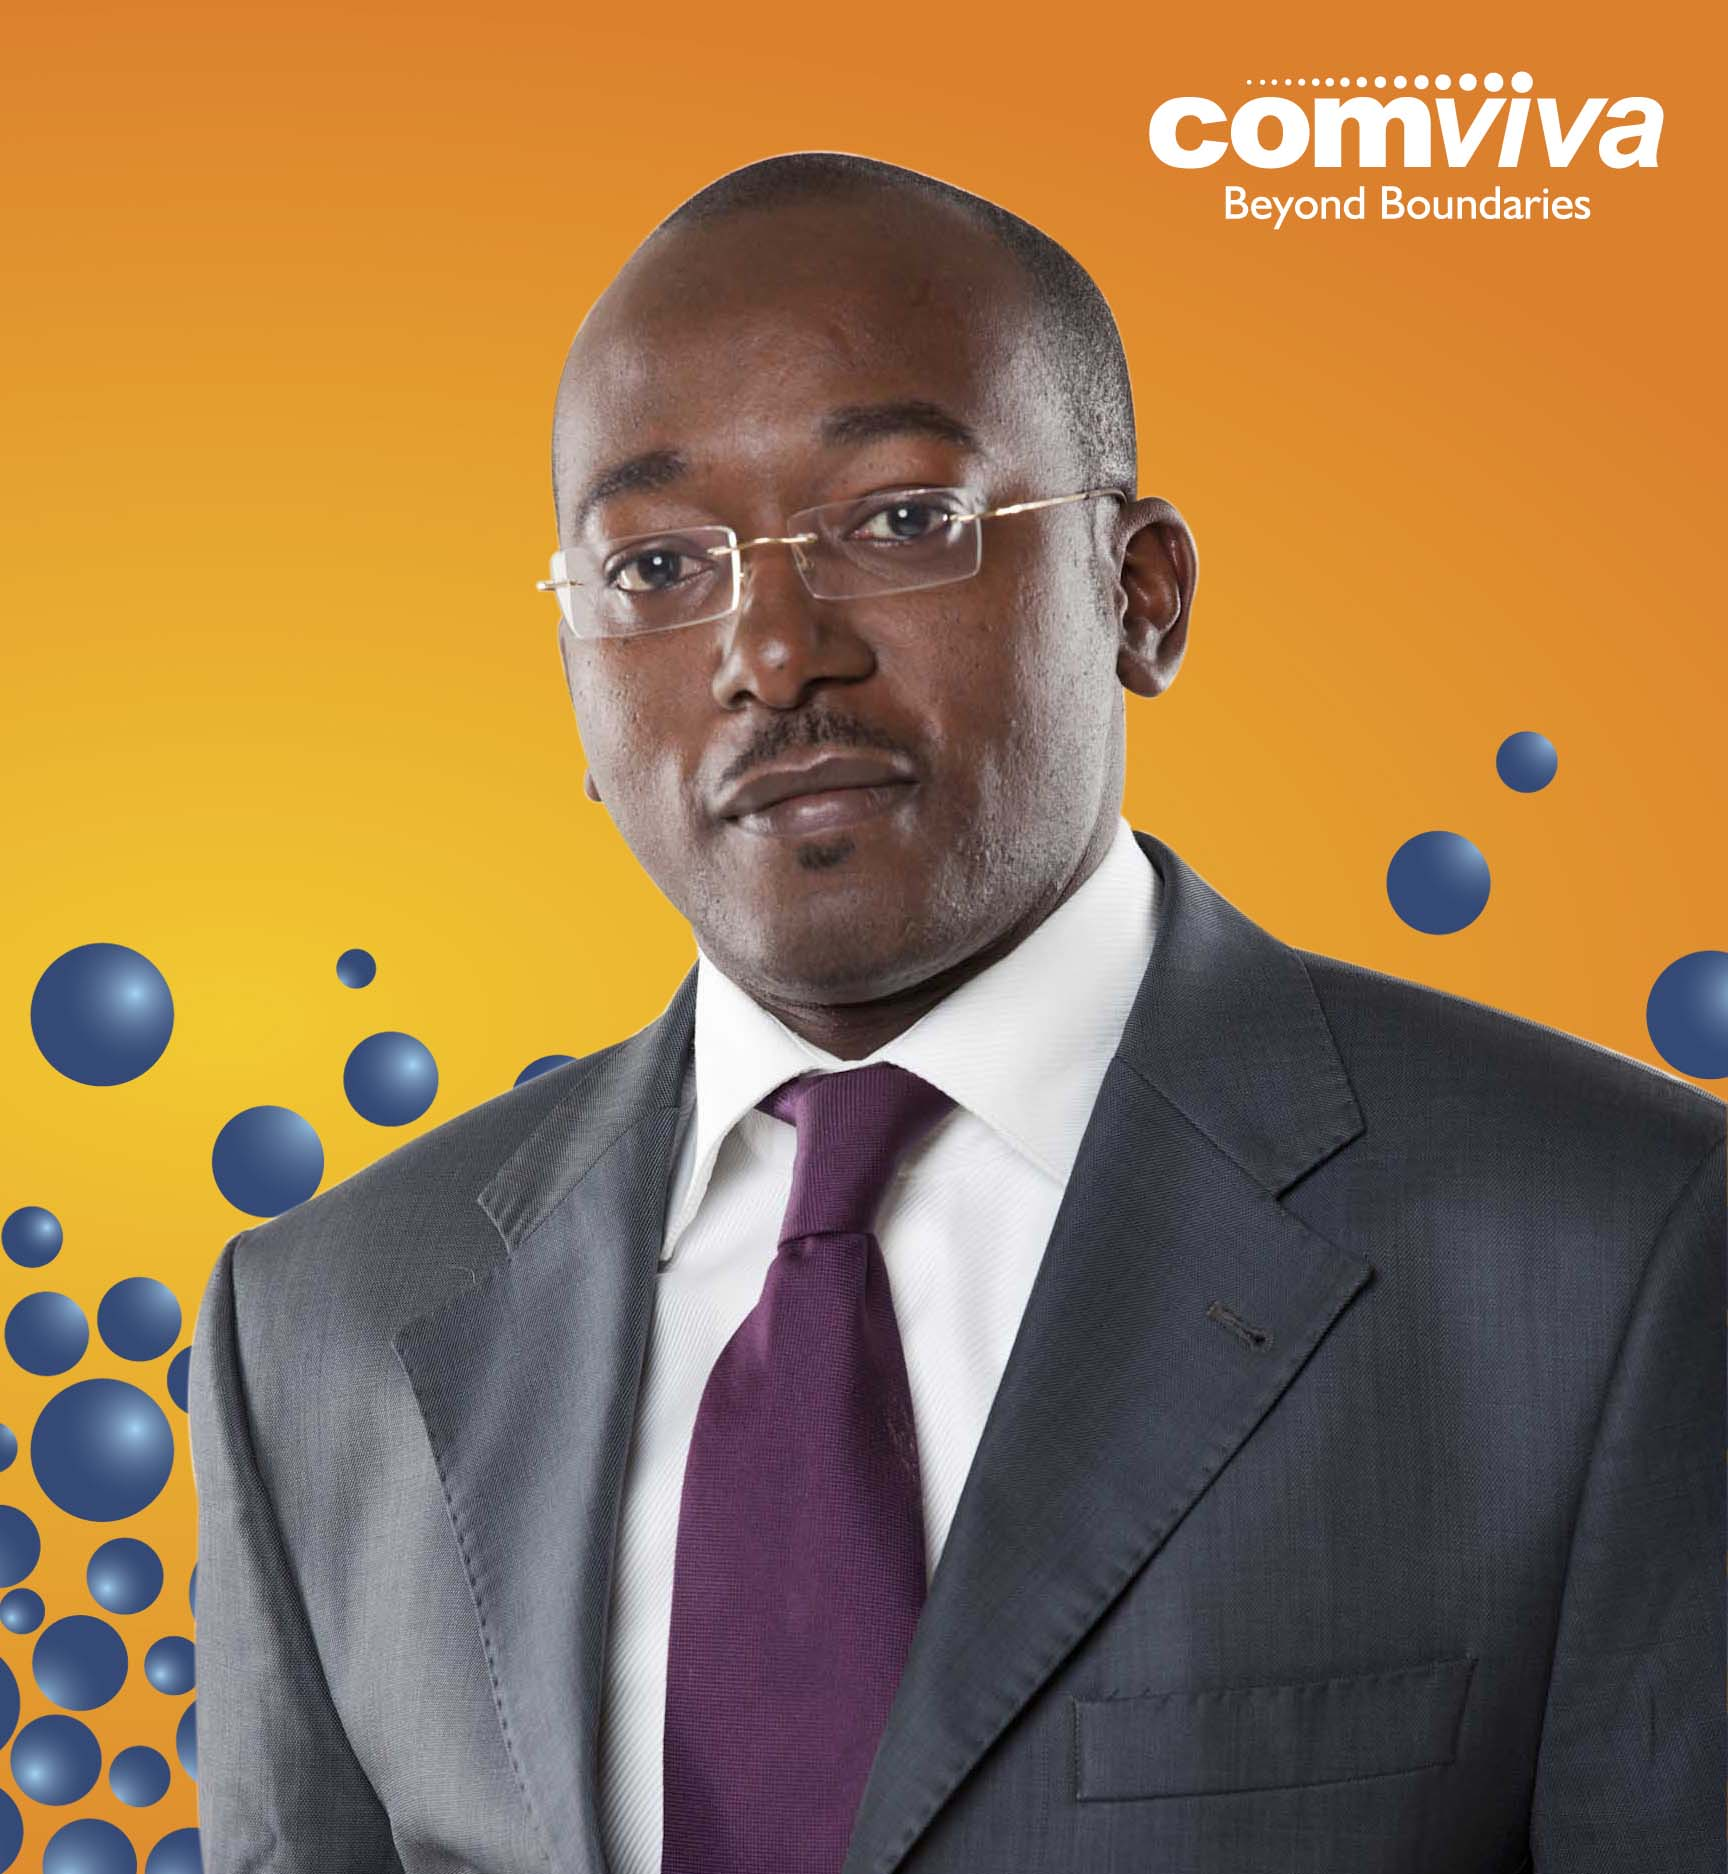 Comviva's Accelerated Growth in Africa Spurs Key Appointment